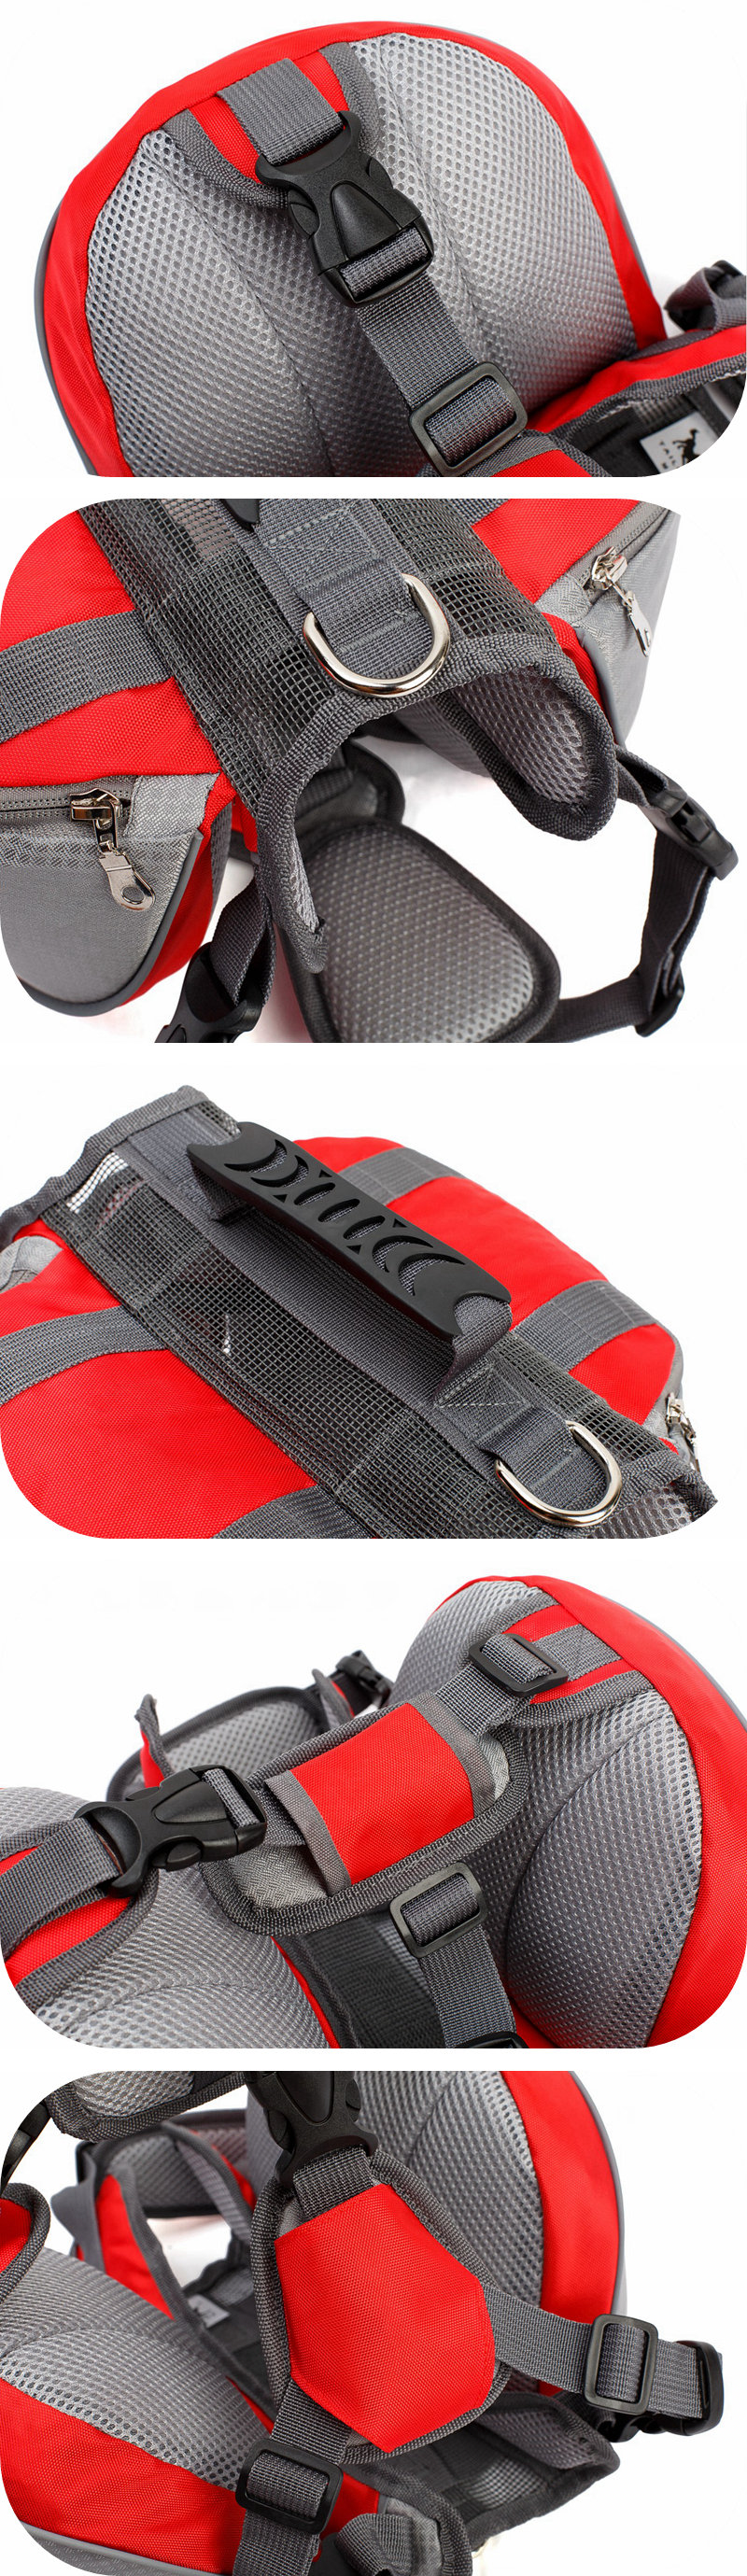 Dog Harness For Medium Dogs Puppy Harness Backpack Carrier Pet Vest Harness Outdoor Training Dog Harness For Small Dogs (4)__